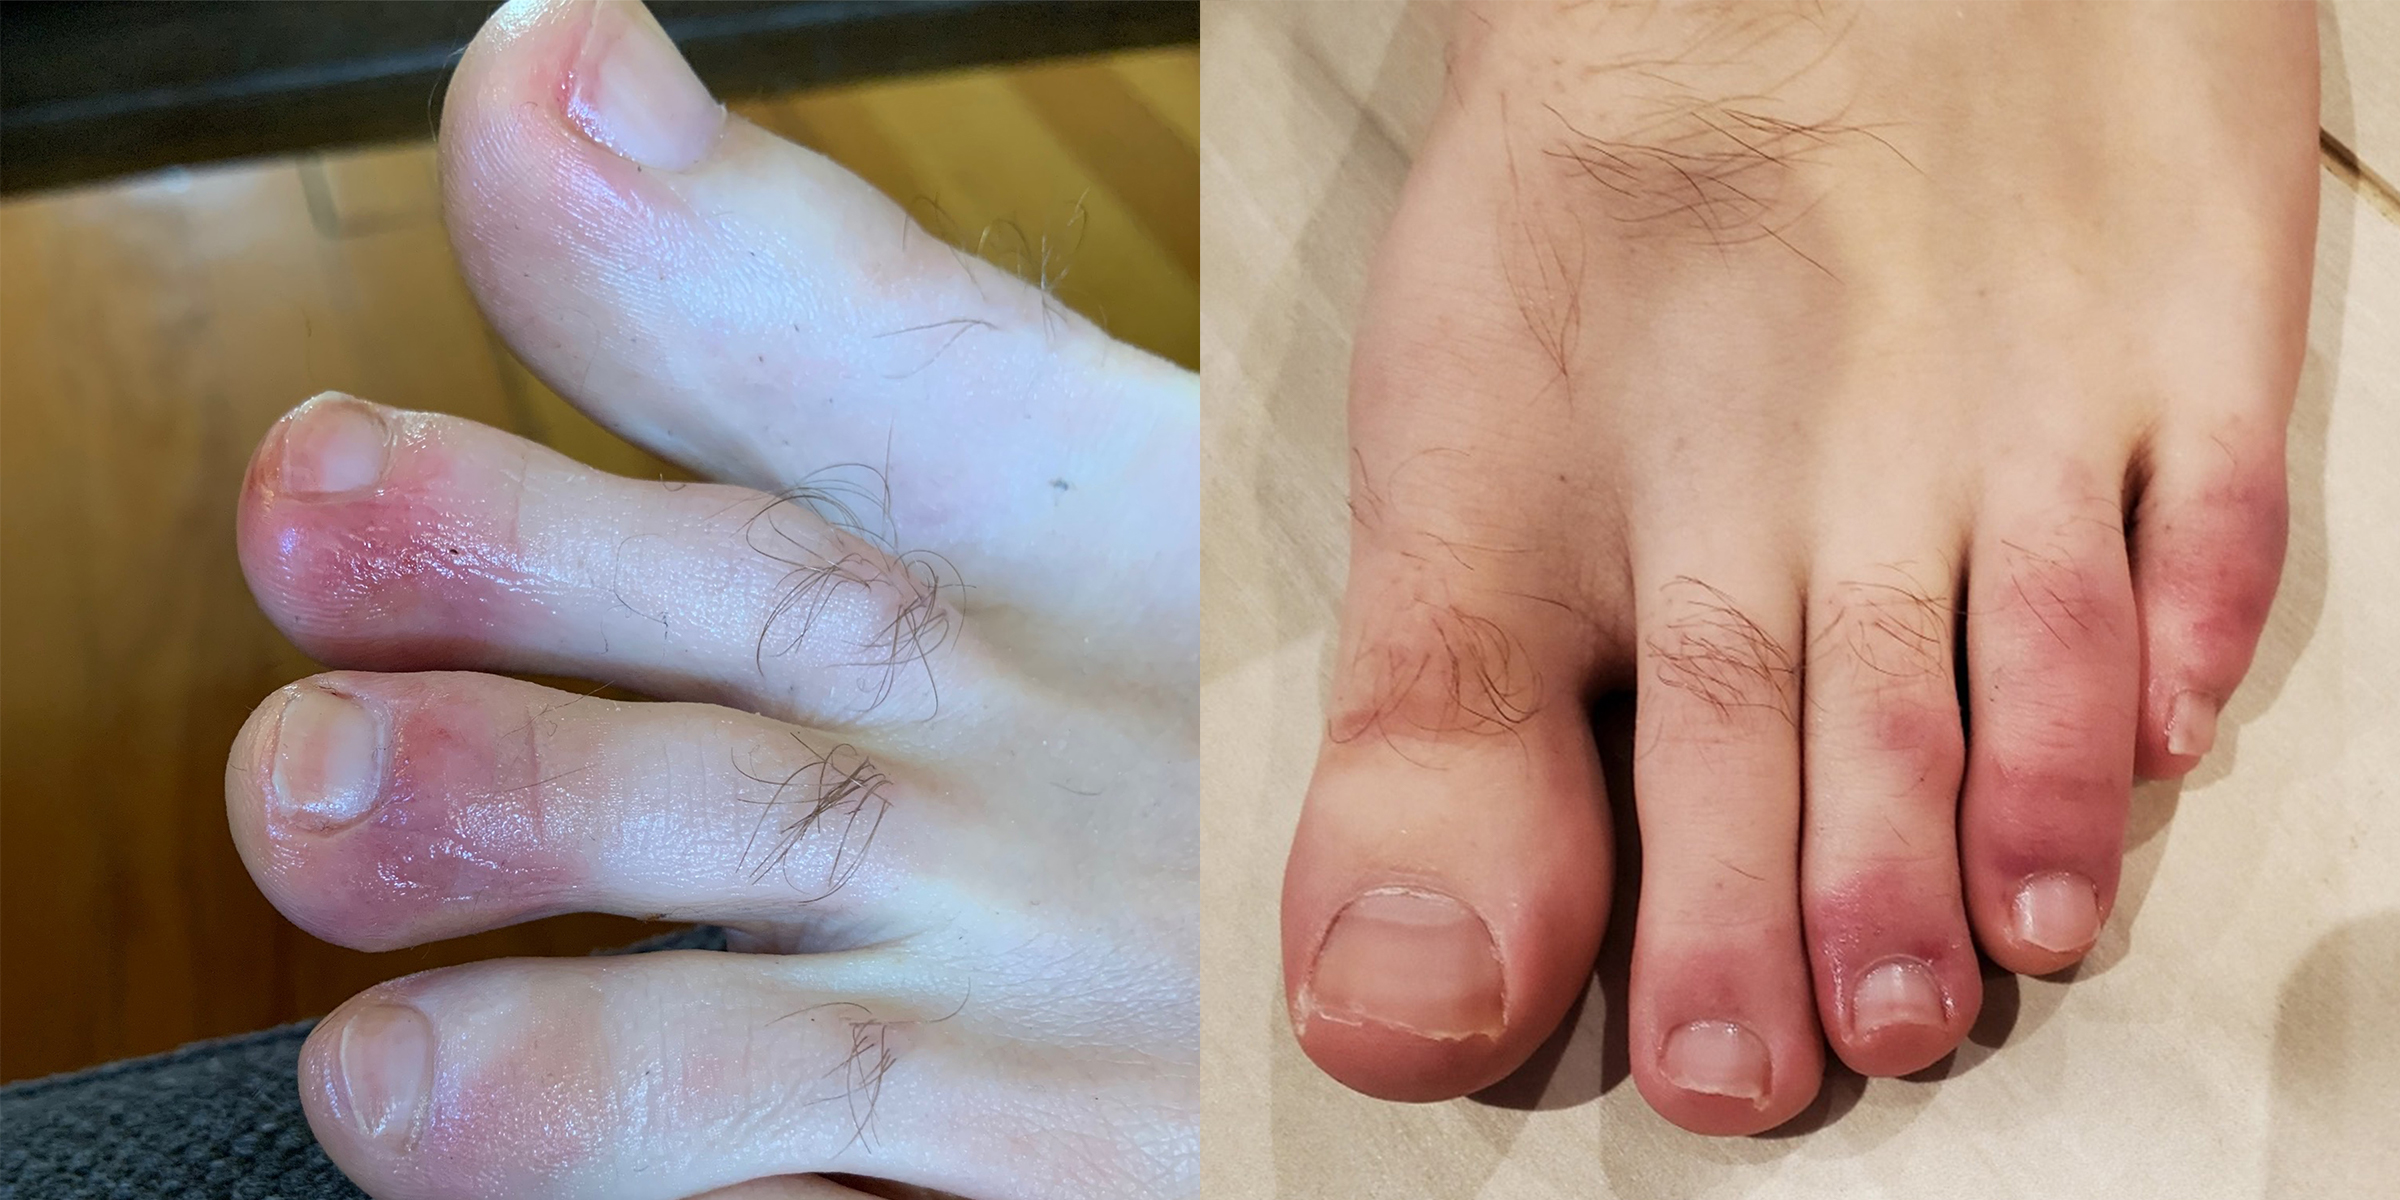 Covid Toes: Dermatologists and podiatrists explain Covid-19 toes